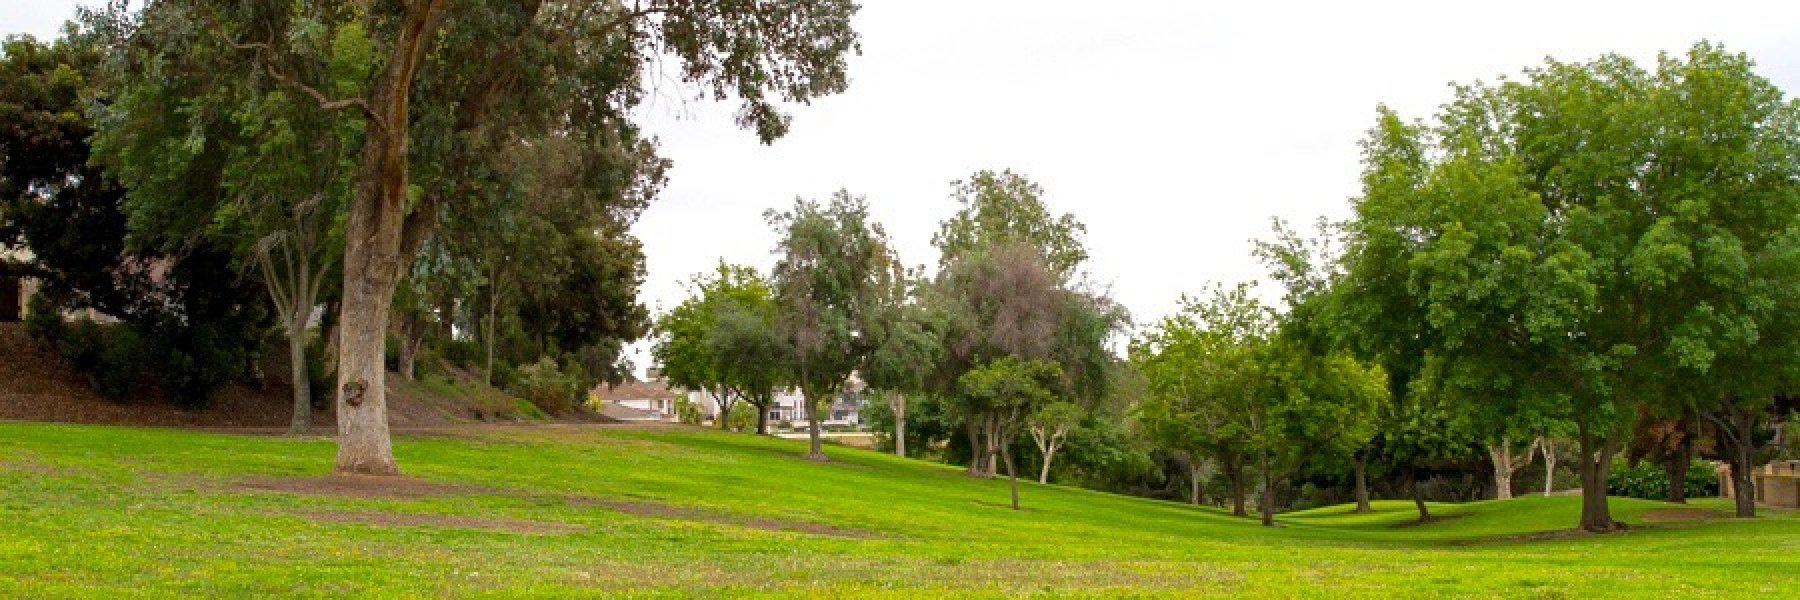 Rancho Del Rey in Chula Vista